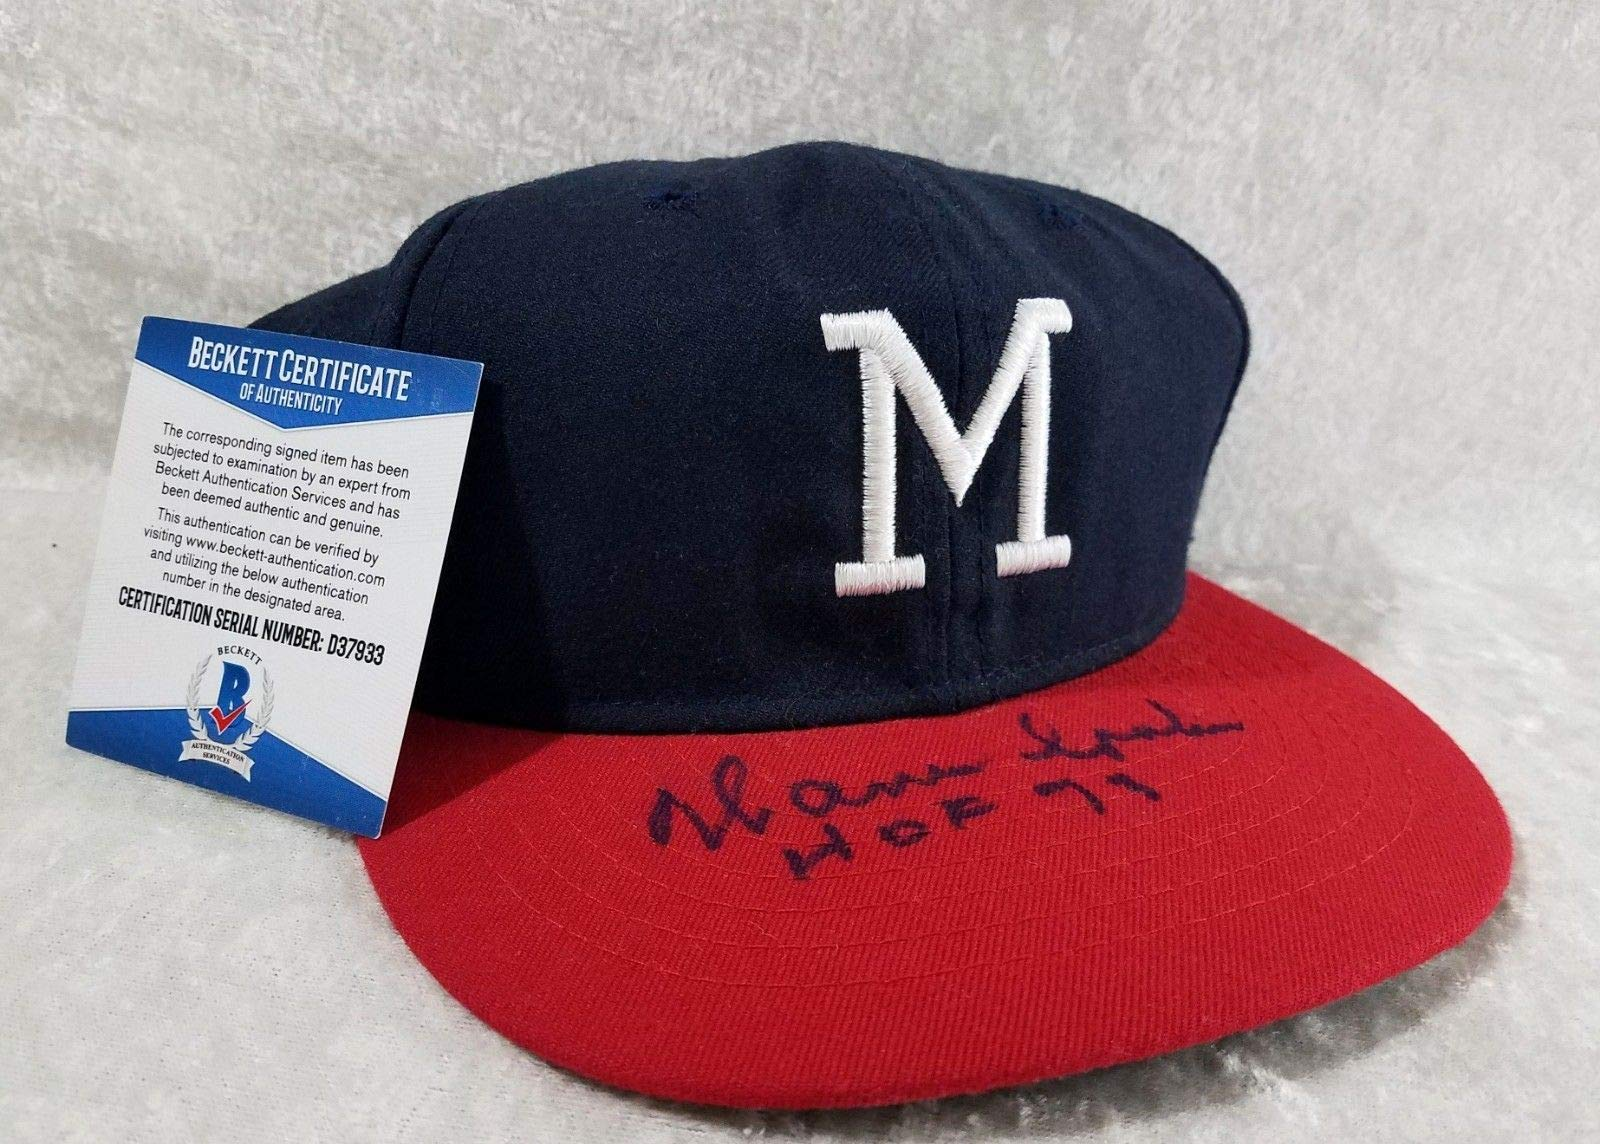 Warren Spahn Milwaukee Braves HOF Autographed Signed Hat Beckett Authentic